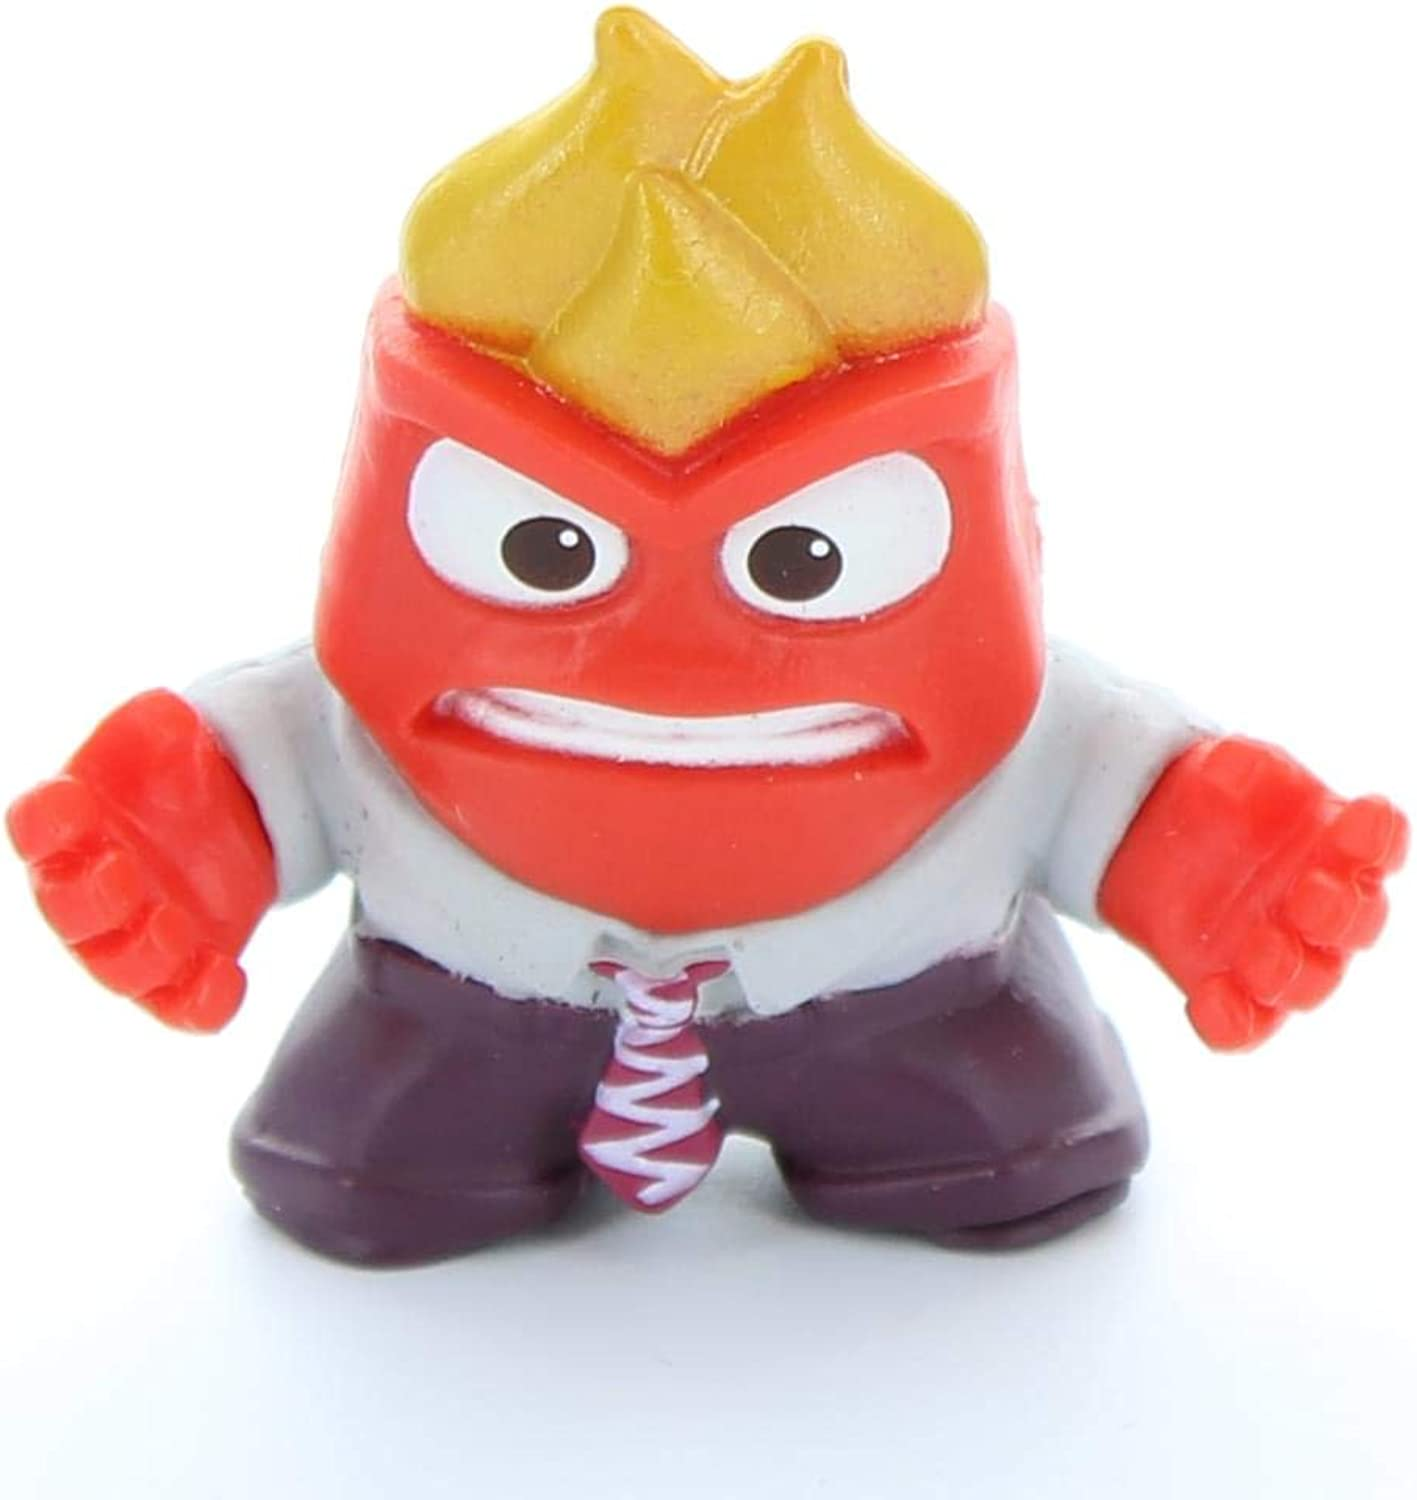 Disney Pixar Inside Out Mini Figure, Anger